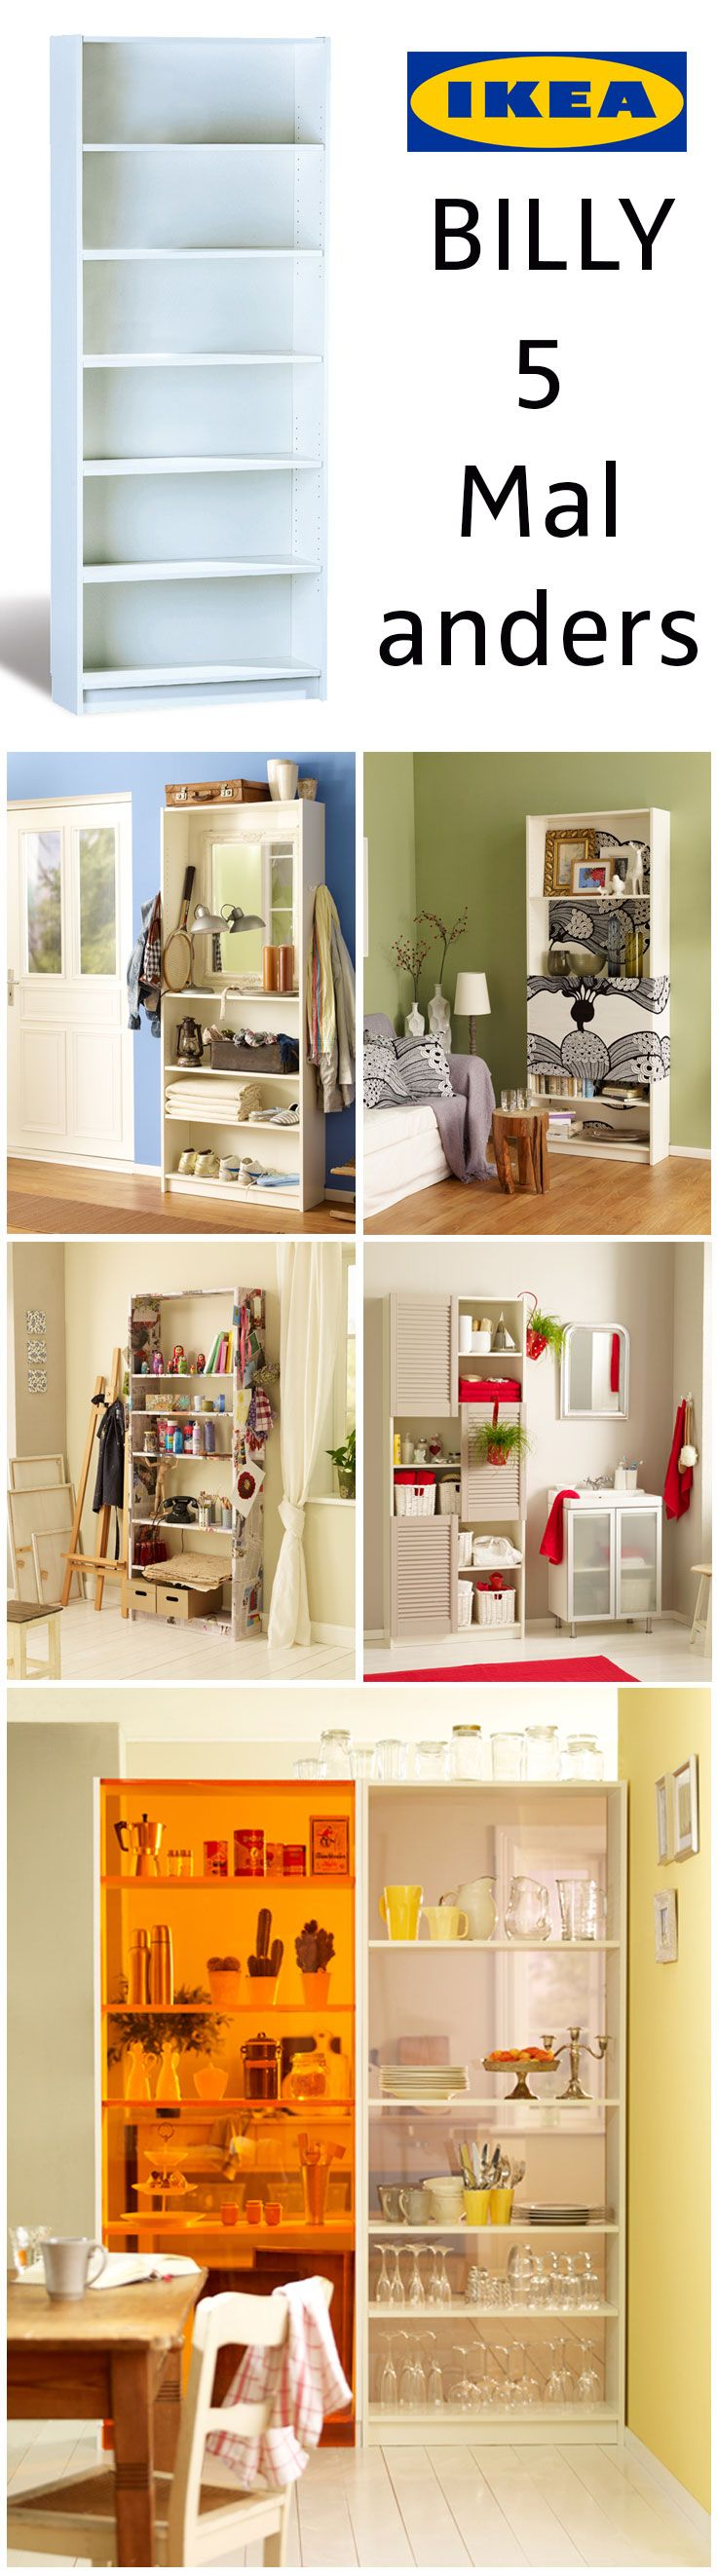 57 best regale schr nke images on pinterest closets. Black Bedroom Furniture Sets. Home Design Ideas